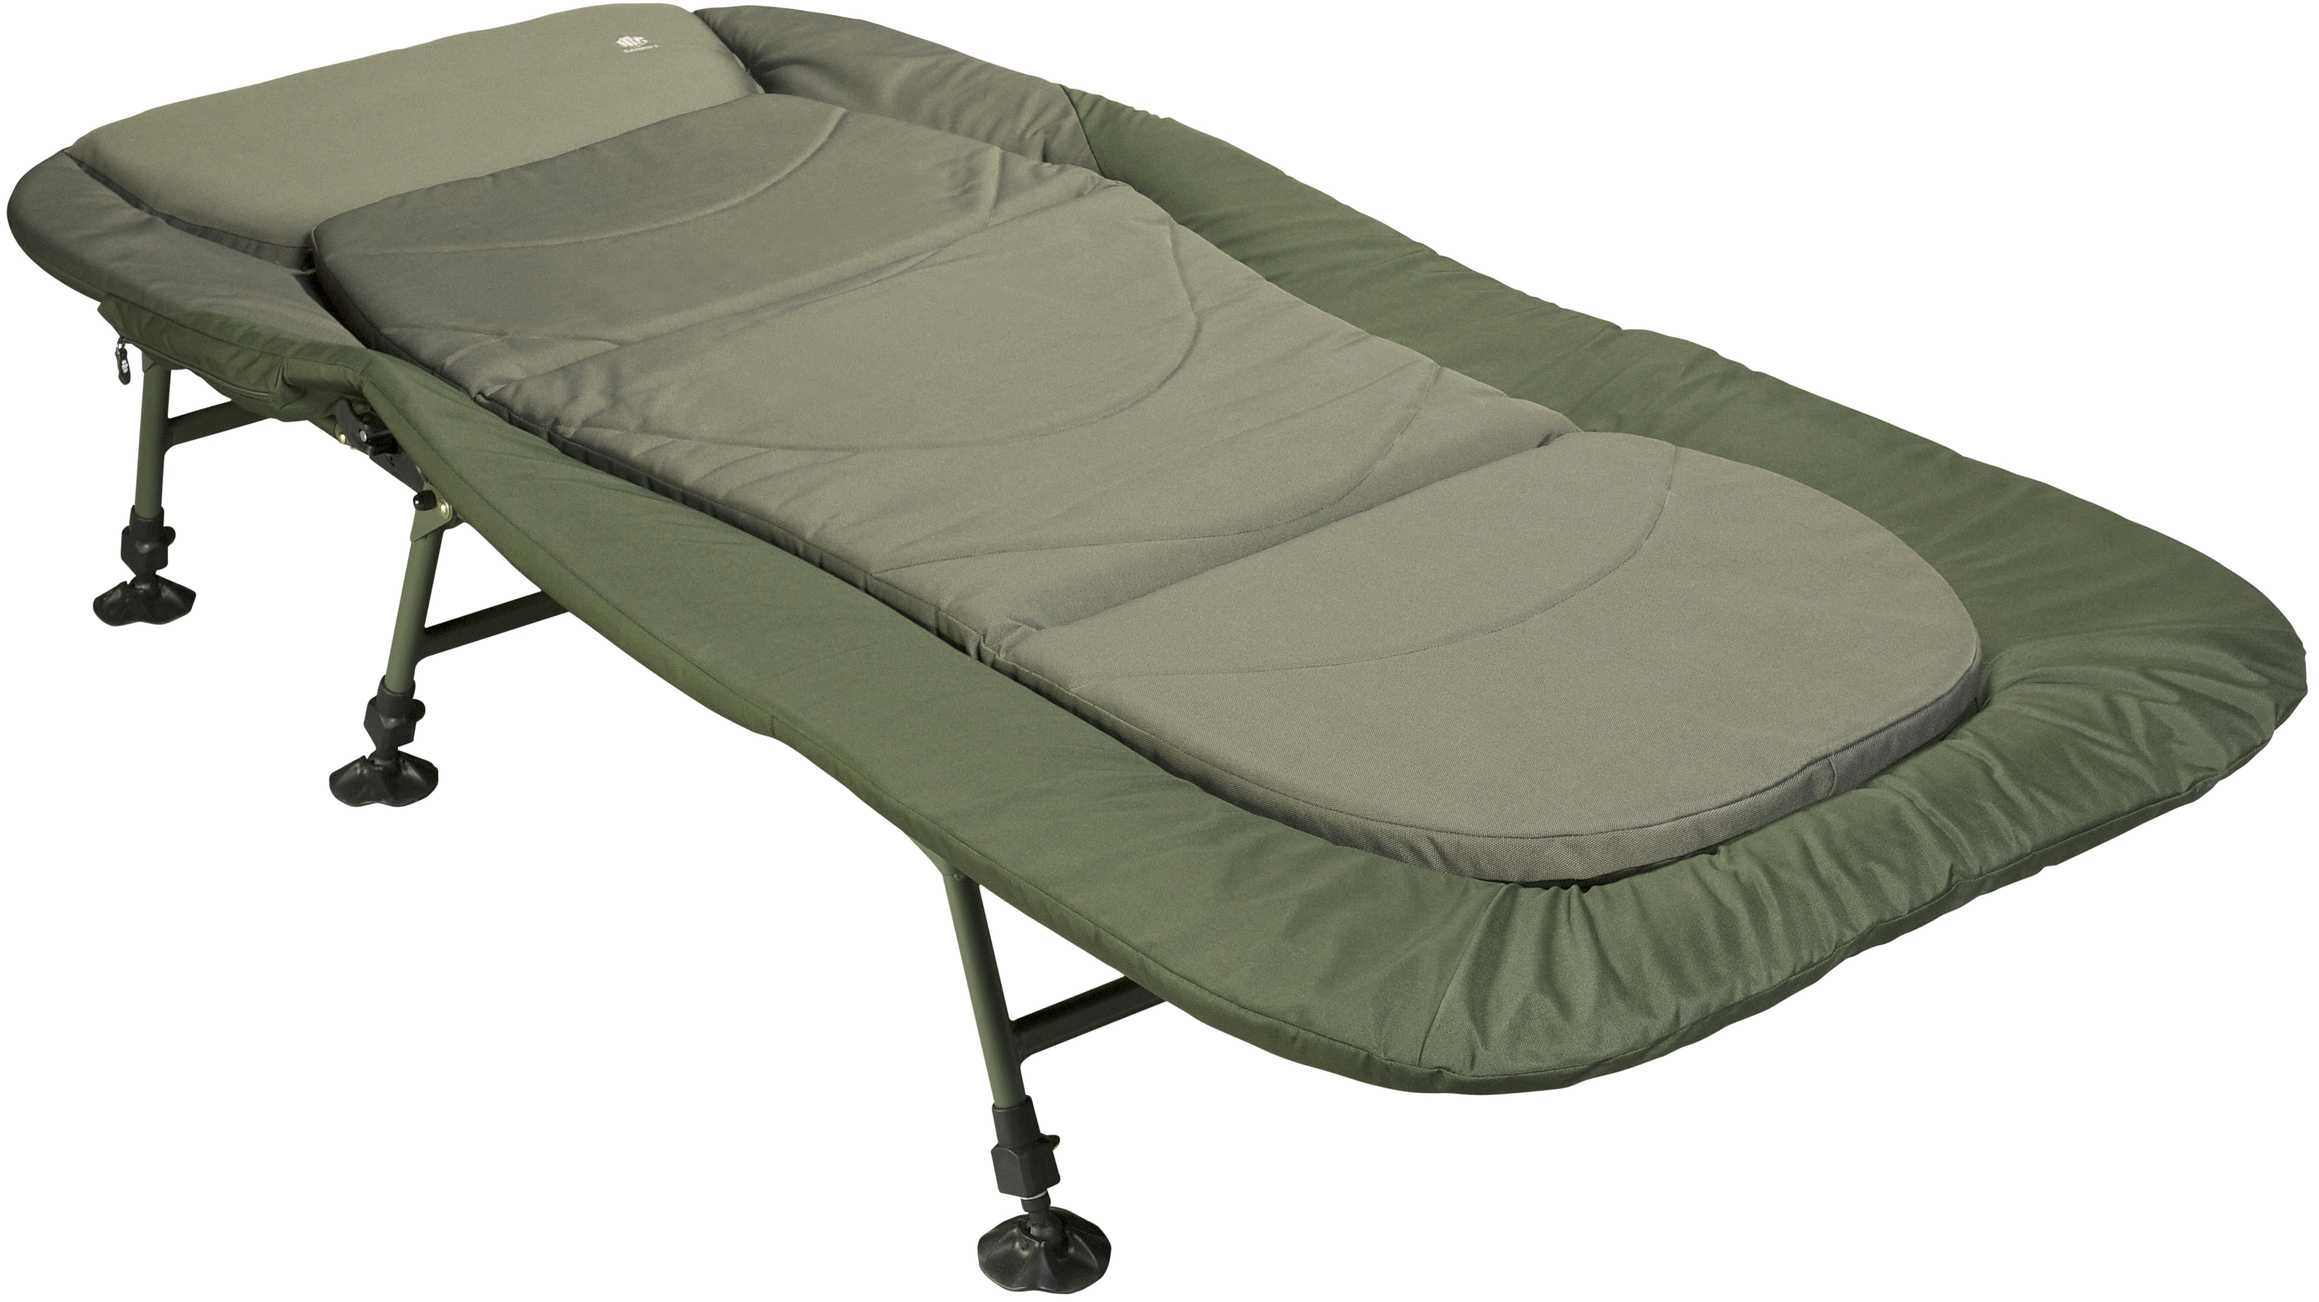 fishing bed chair used cover hire ellesmere port jrc extreme bedchair  glasgow angling centre